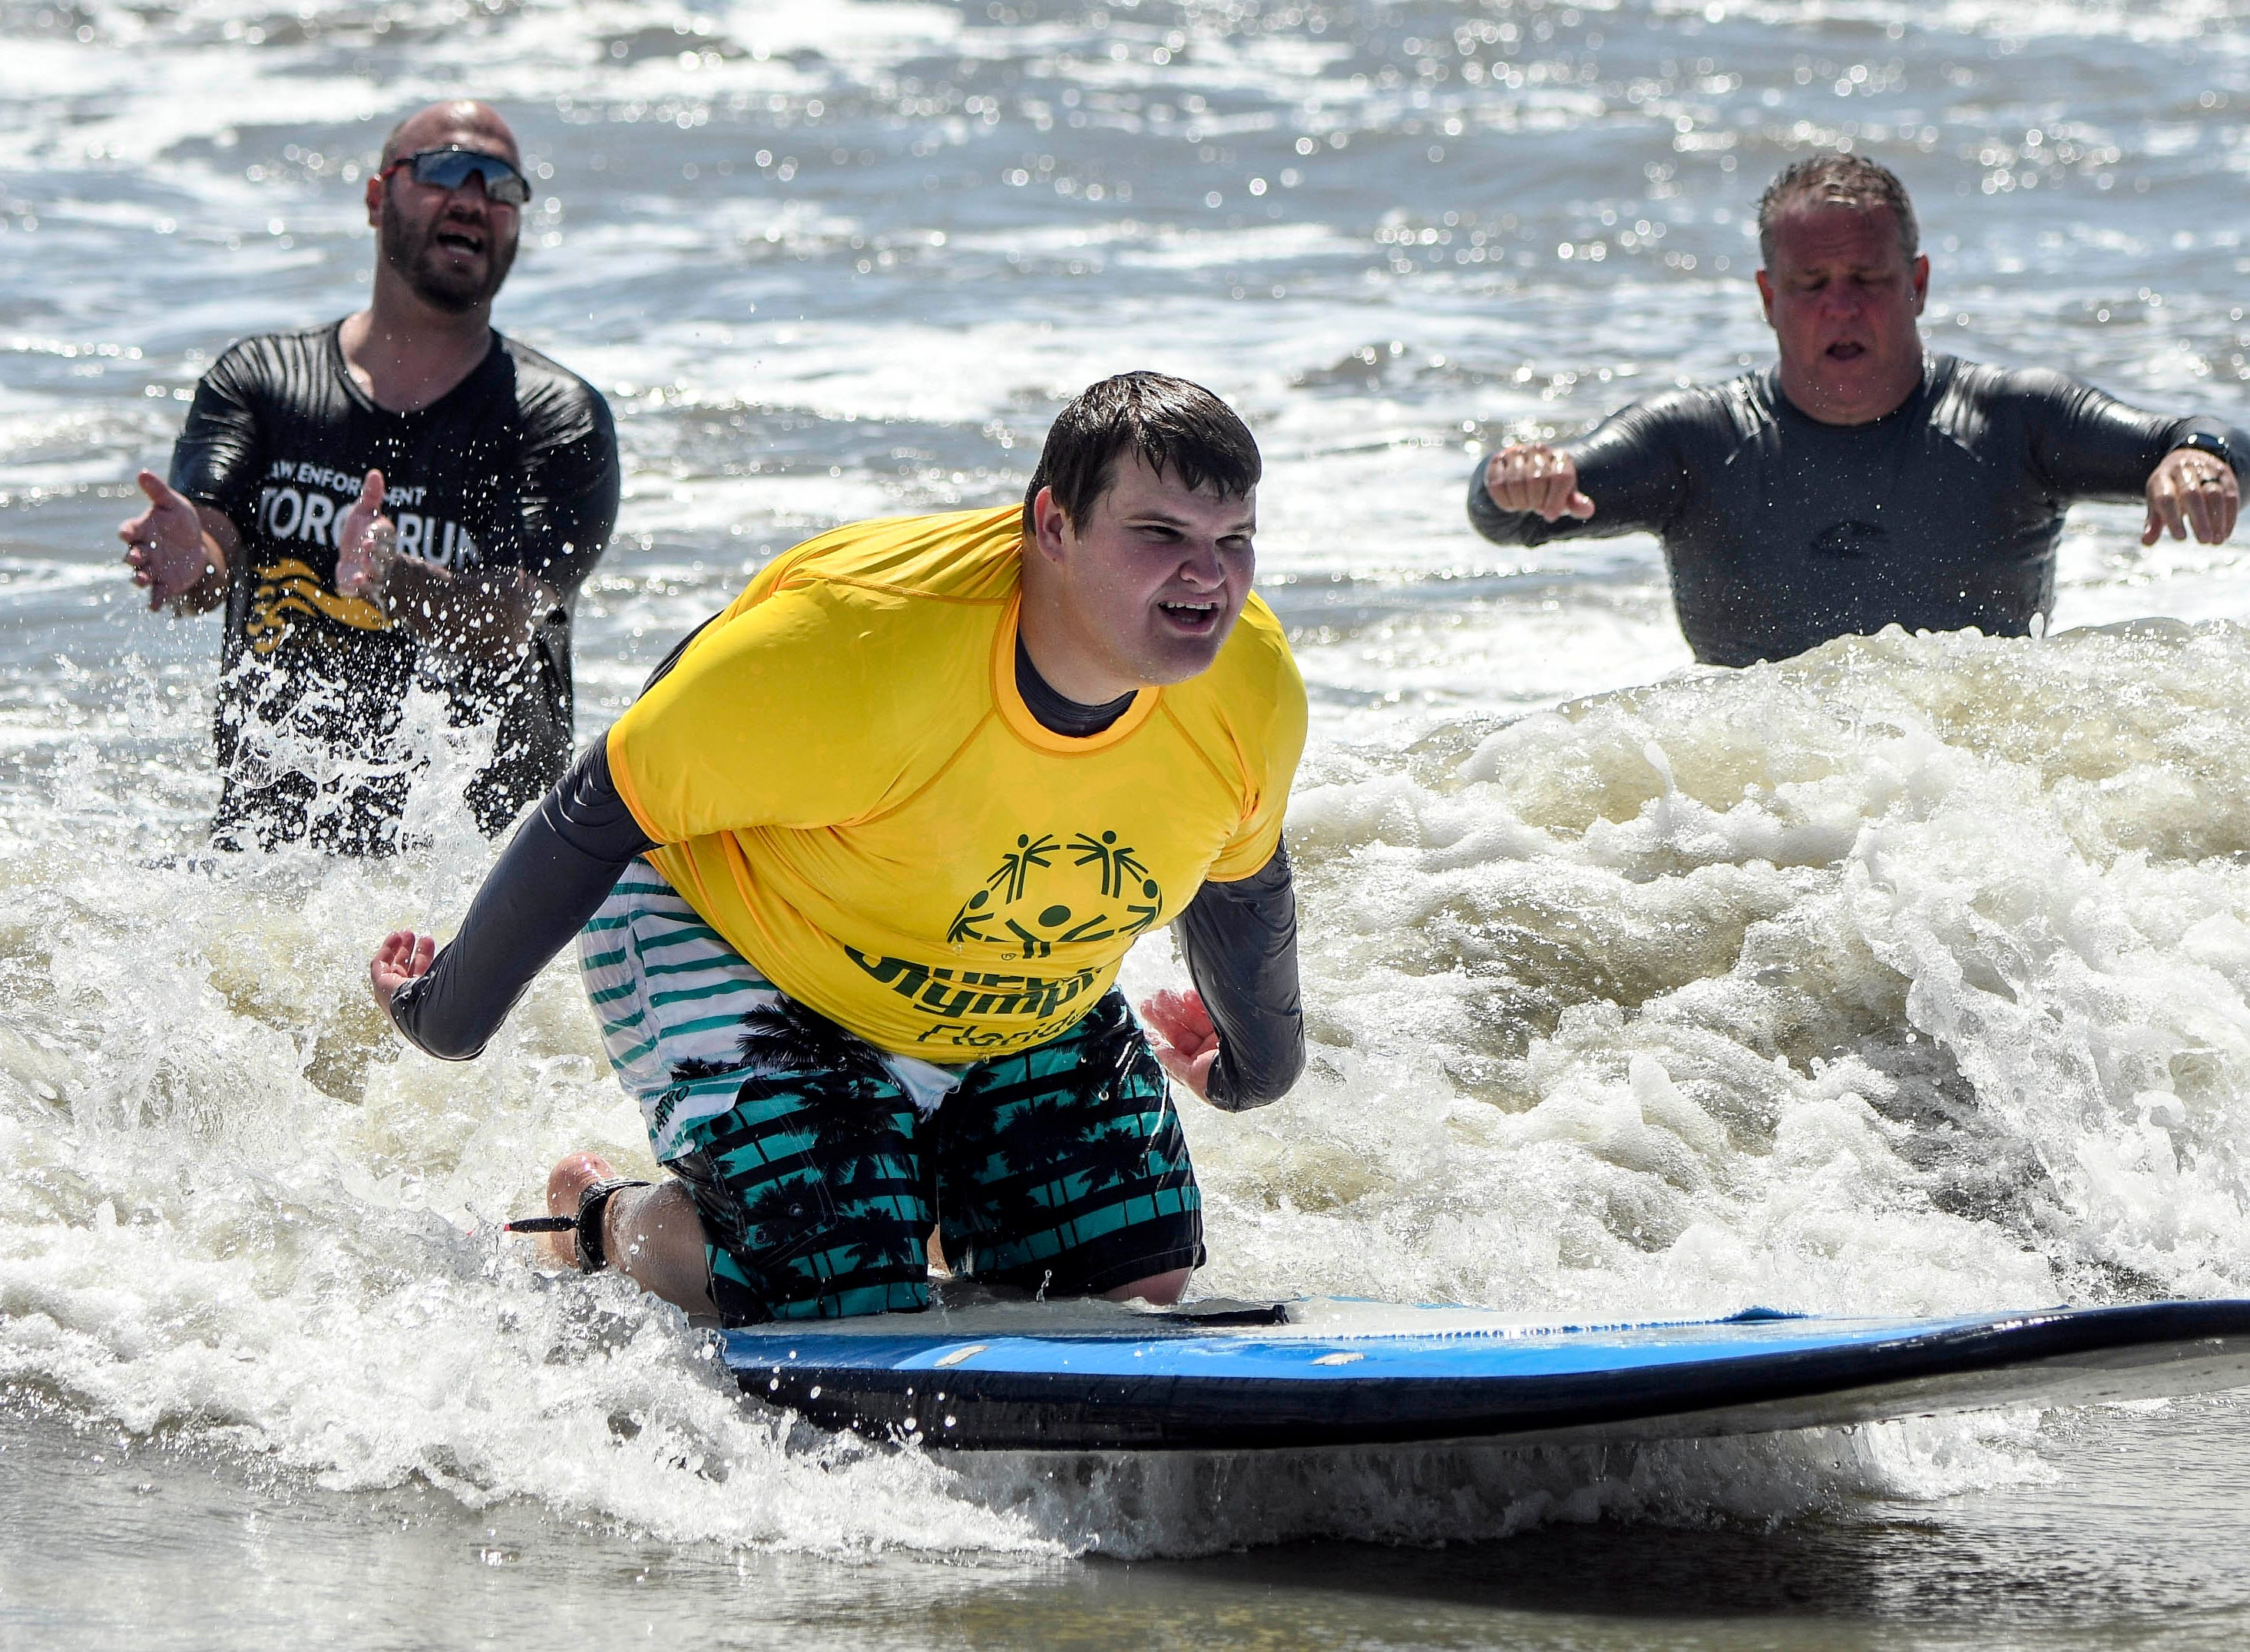 Jacob Nehus is encouraged by volunteers as he participates in the Special Olympics spring surfing festival at Shepard Park.